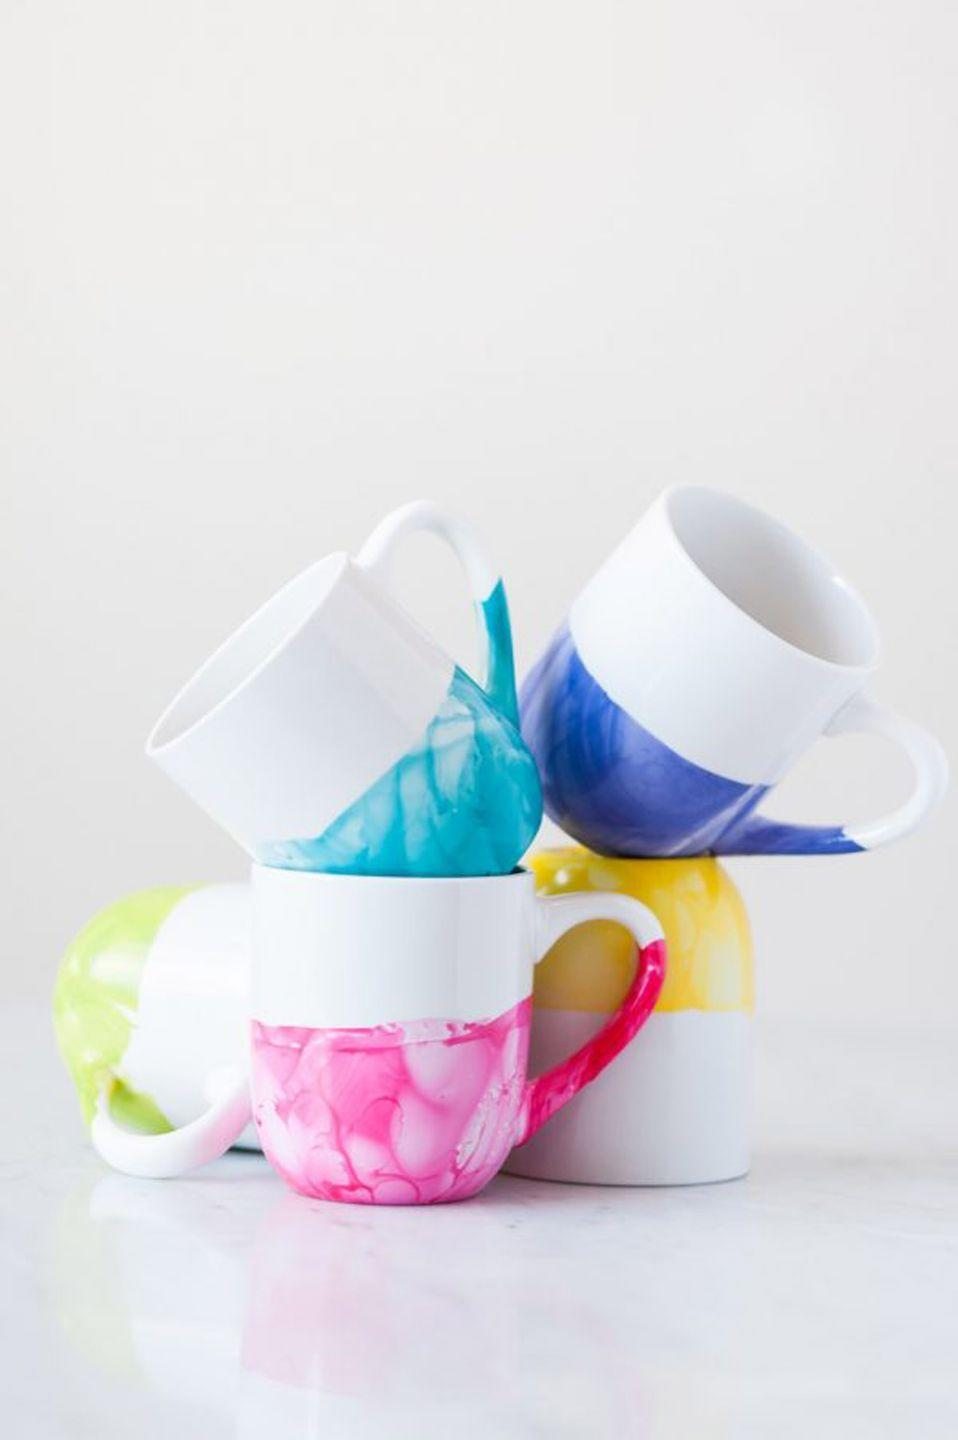 """<p>Let kids make a little bit of a mess with these coffee mugs. As beautiful as the marbling looks, it's actually incredibly easy to create.</p><p><strong>Get the tutorial at <a href=""""https://thesweetestoccasion.com/2015/08/diy-marble-dipped-mugs/"""" rel=""""nofollow noopener"""" target=""""_blank"""" data-ylk=""""slk:The Sweetest Occasion"""" class=""""link rapid-noclick-resp"""">The Sweetest Occasion</a>.</strong></p><p><strong>What you'll need:</strong> <em>paintable ceramic mugs ($20 for 4, <a href=""""https://www.amazon.com/Perfect-Mug-Unfinished-Paint-Potamus/dp/B019KV7QXI"""" rel=""""nofollow noopener"""" target=""""_blank"""" data-ylk=""""slk:amazon.com"""" class=""""link rapid-noclick-resp"""">amazon.com</a>)</em></p>"""